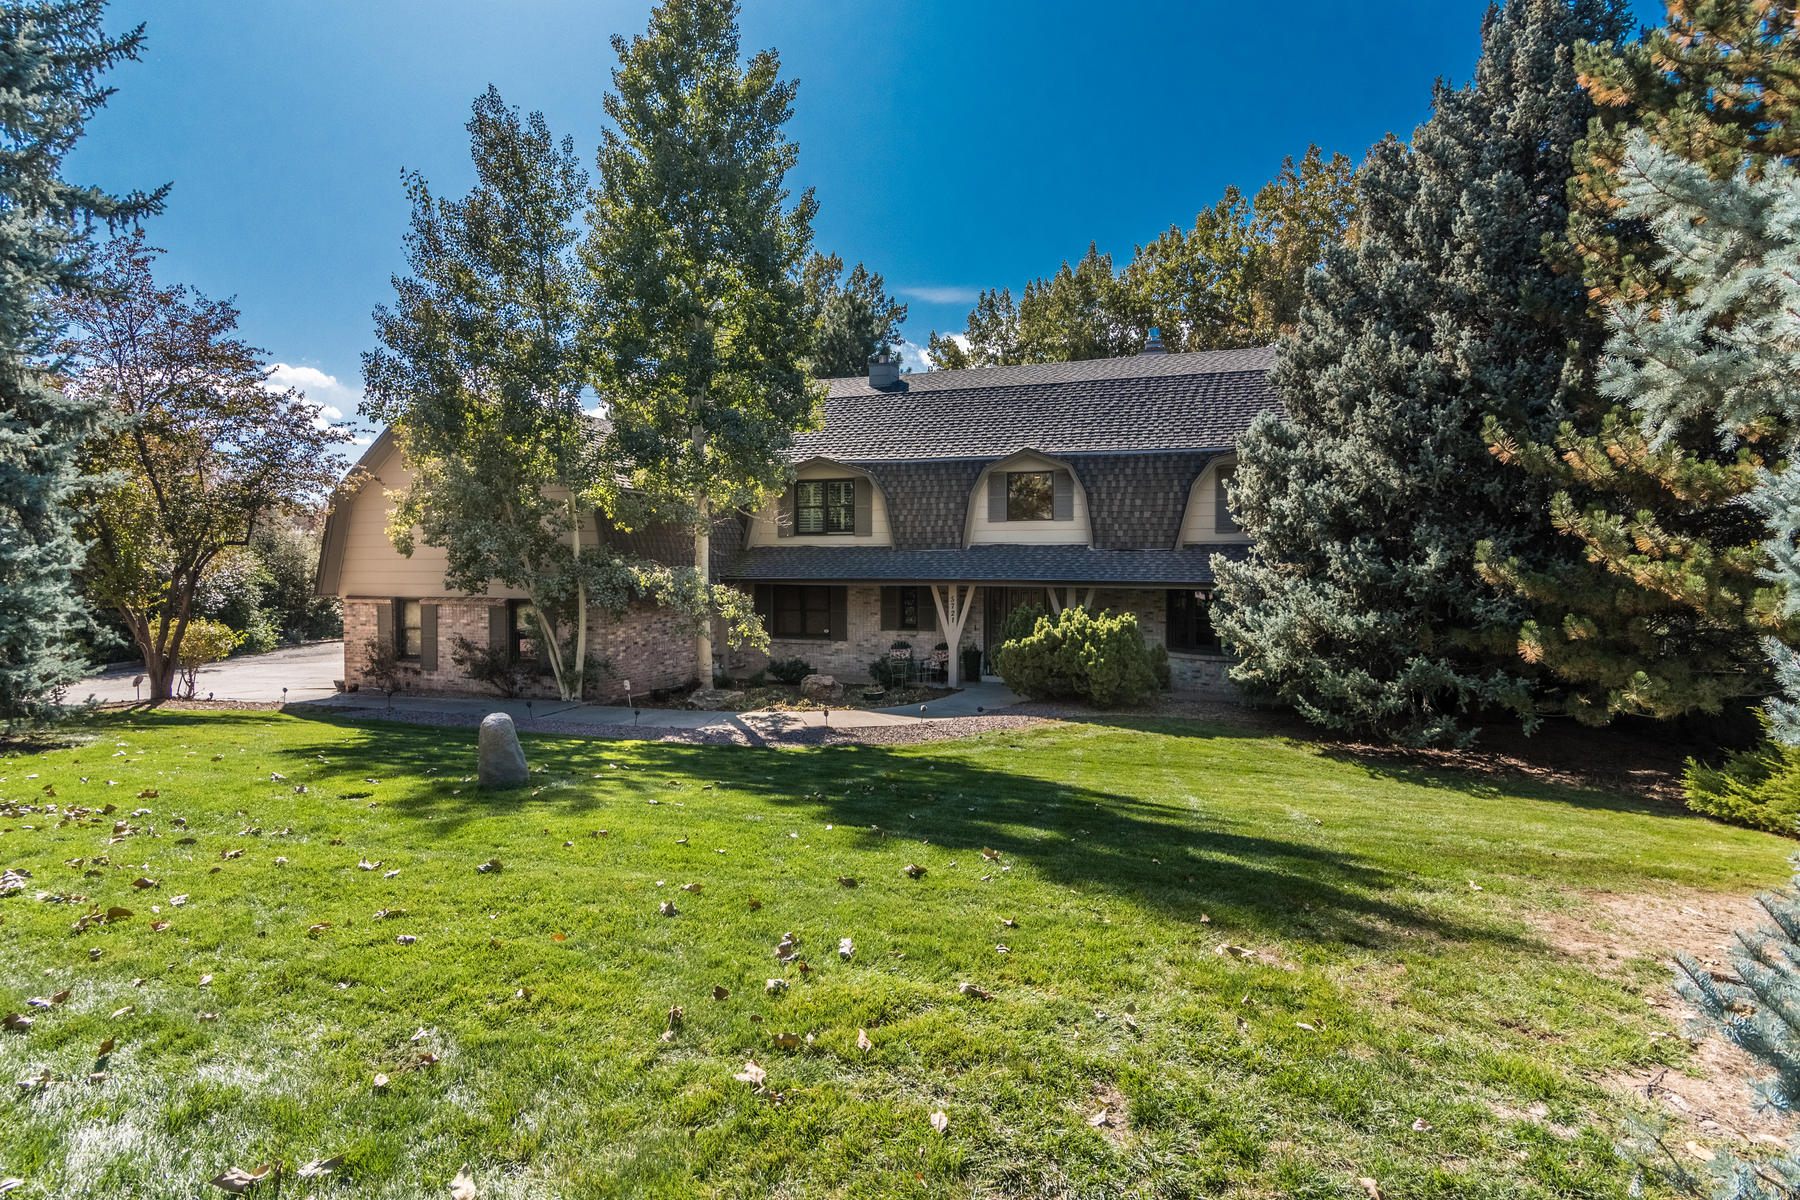 Single Family Homes for Active at Nestled amidst towering pines on nearly 2 acres! 5721 Green Oaks Dr Greenwood Village, Colorado 80121 United States